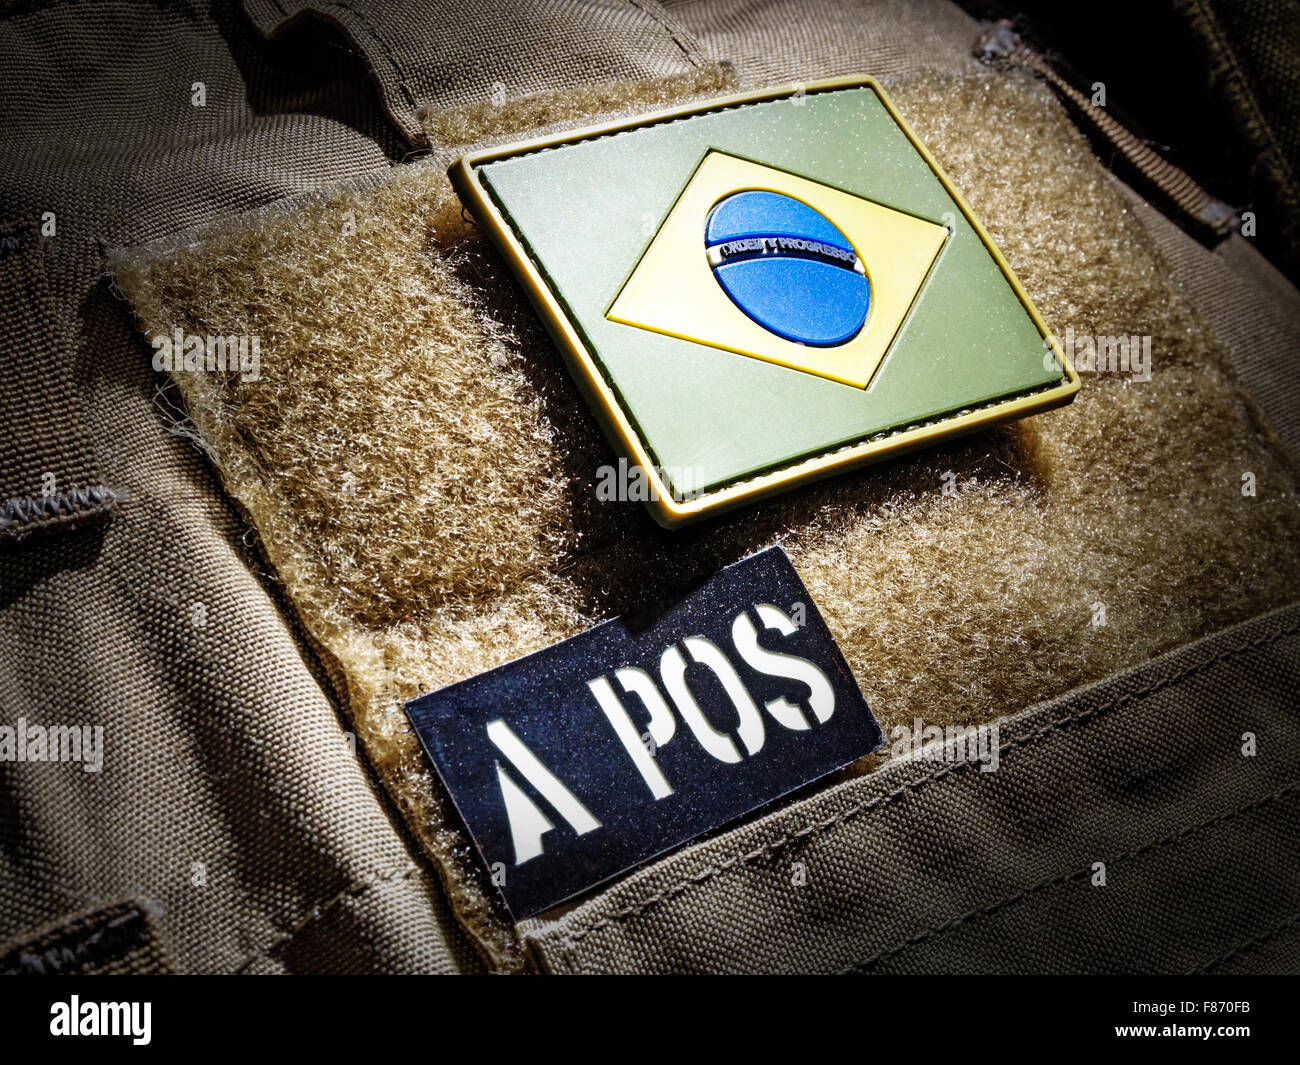 Brazilian flag and blood type IR patch on plate carrier - Stock Image